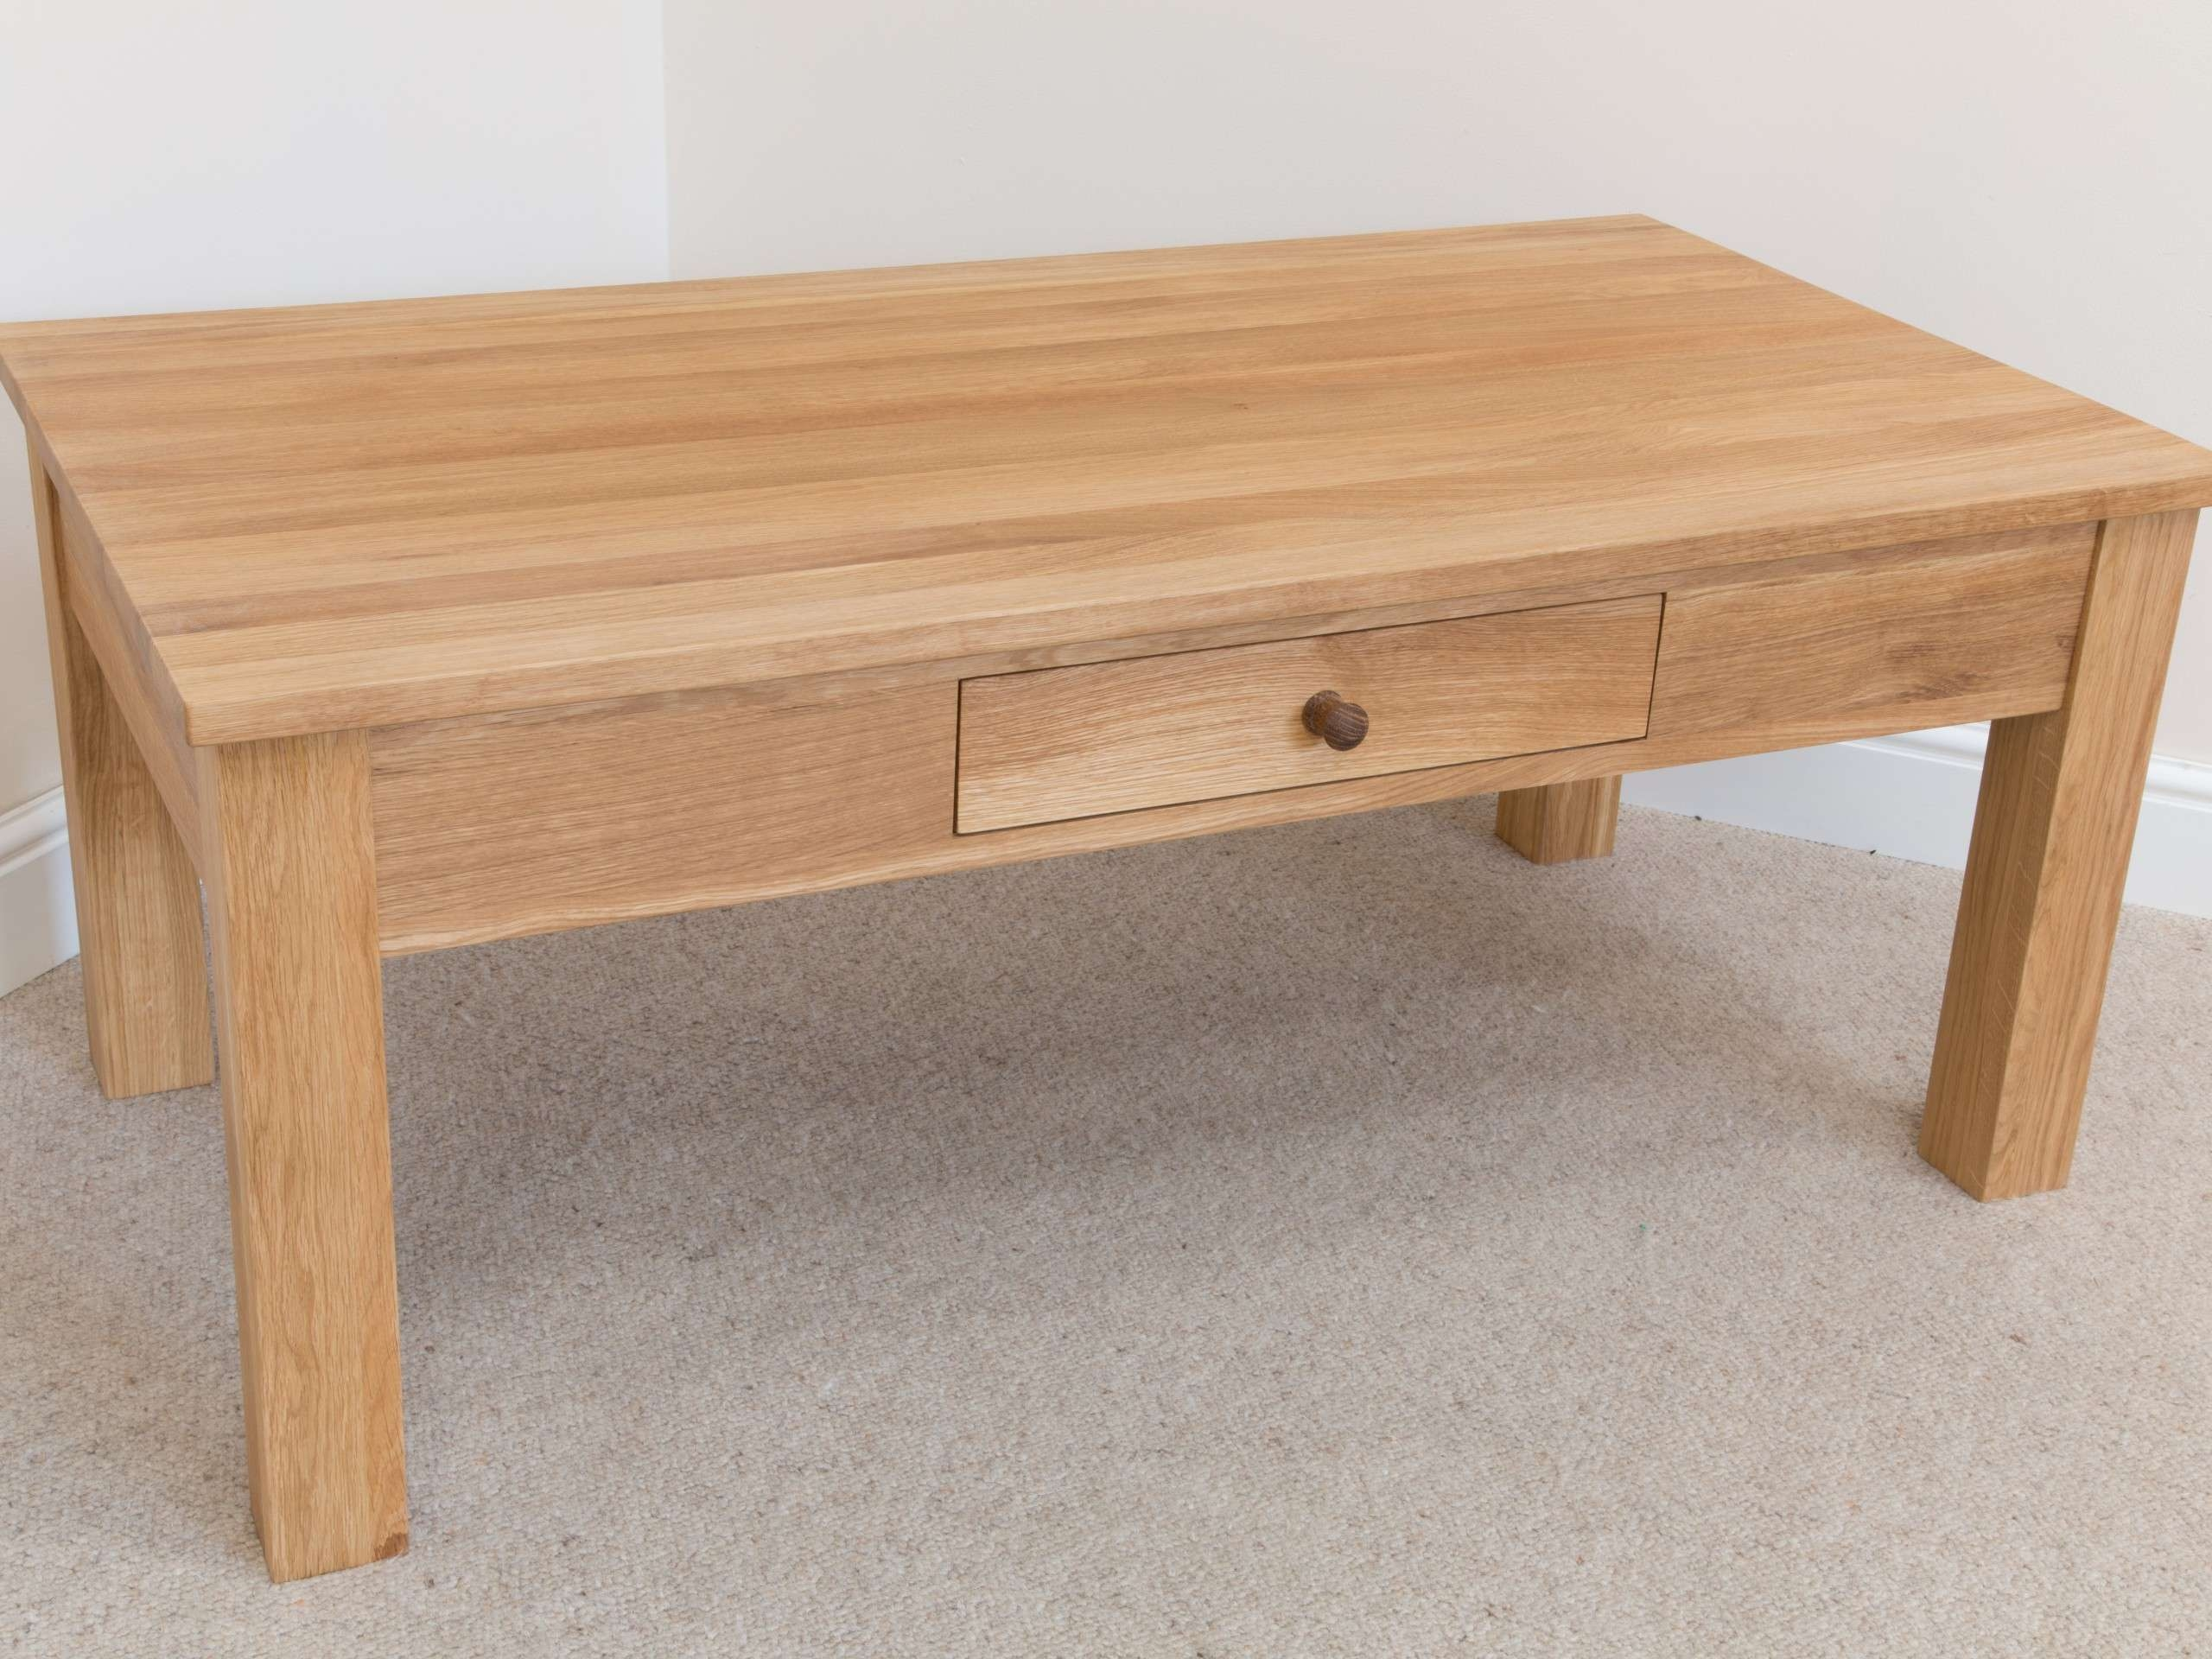 Divine Solid Oak Coffee Table With Drawers New At Drawer For Fashionable Solid Oak Coffee Table With Storage (View 4 of 20)